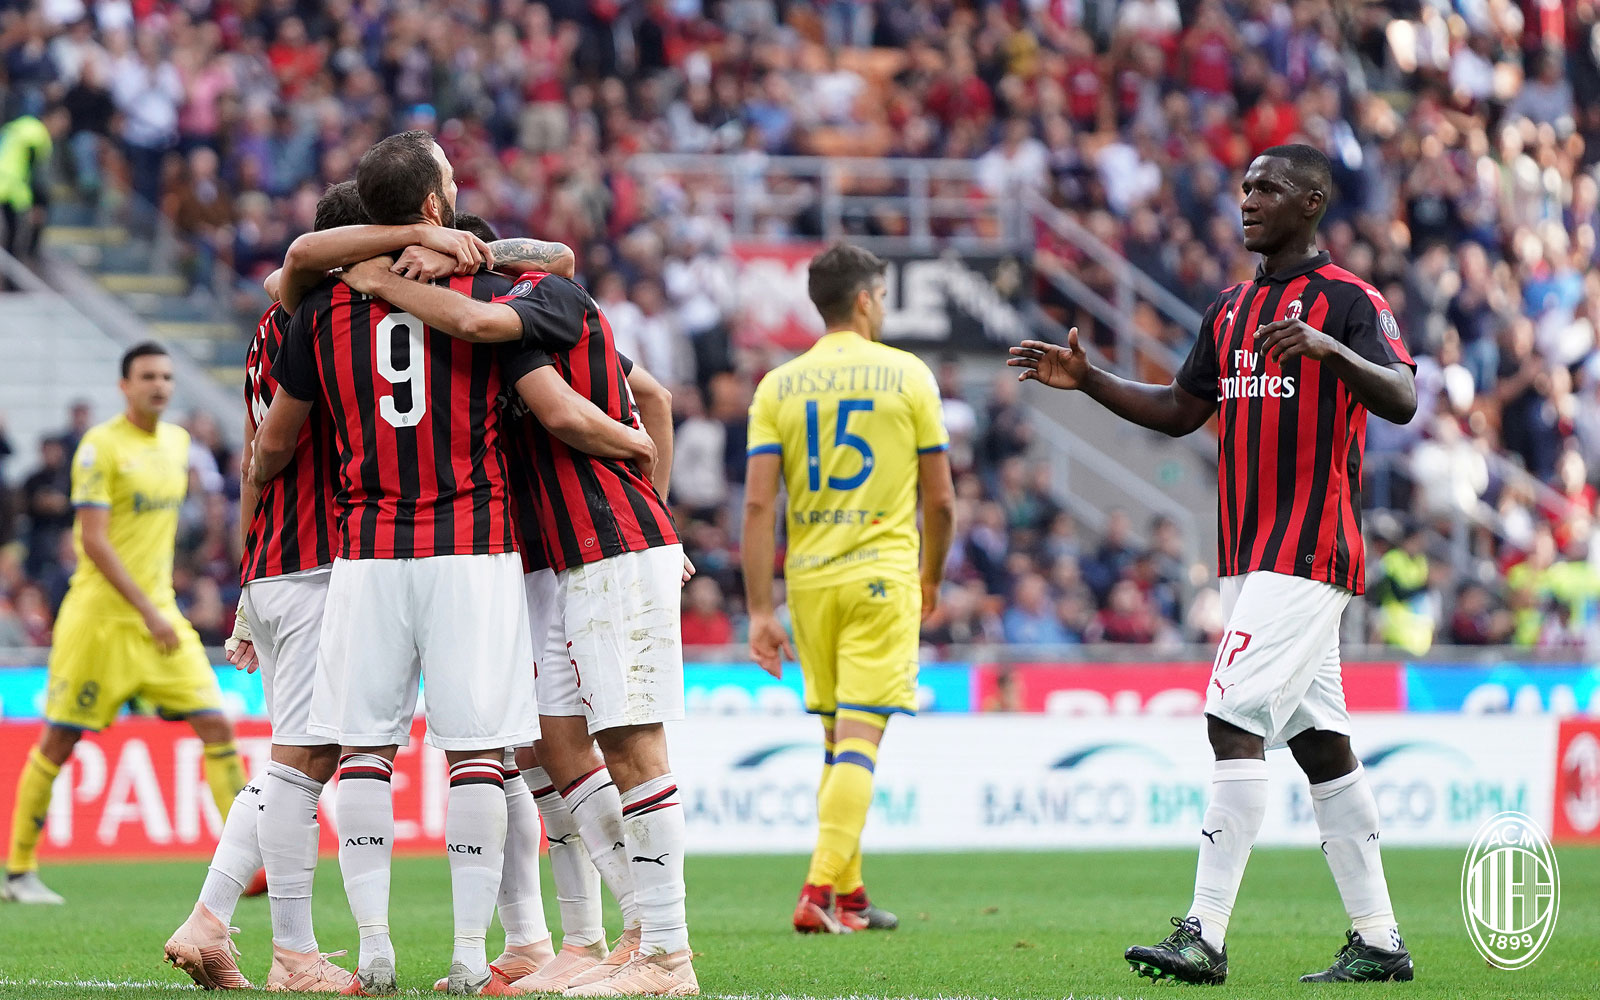 Gonzalo Higuain, Hakan Çalhanoğlu, Giacomo Bonaventura and Cristian Zapata celebrating during Milan-Chievo at Stadio San Siro on October 7, 2018. (@acmilan.com)